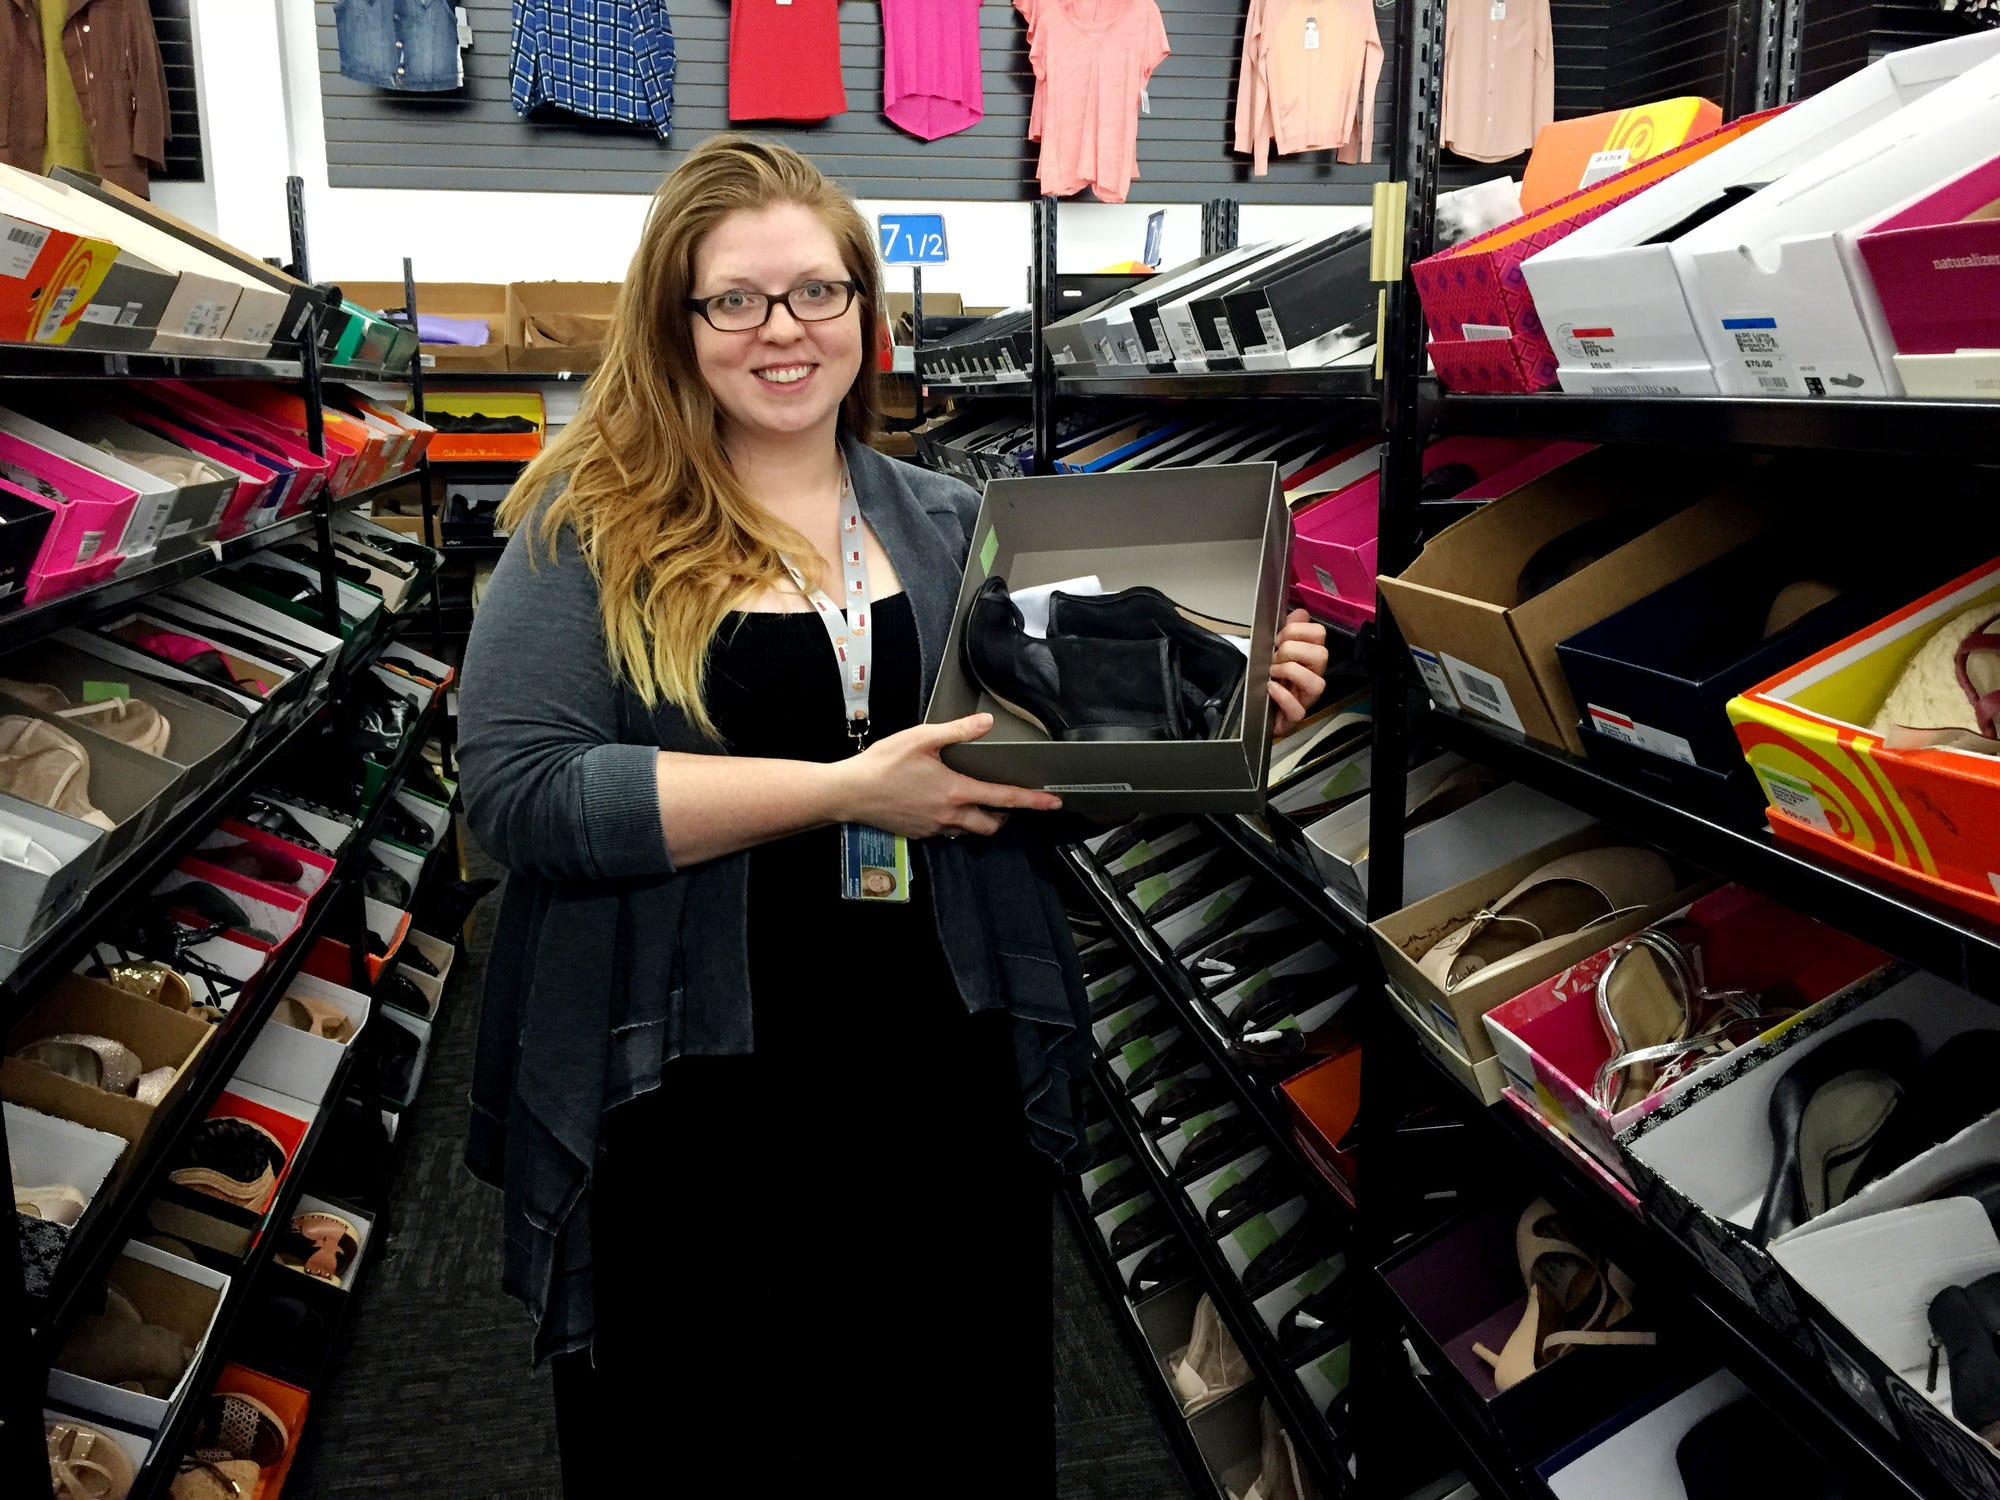 Zappos Outlet will give you happy feet